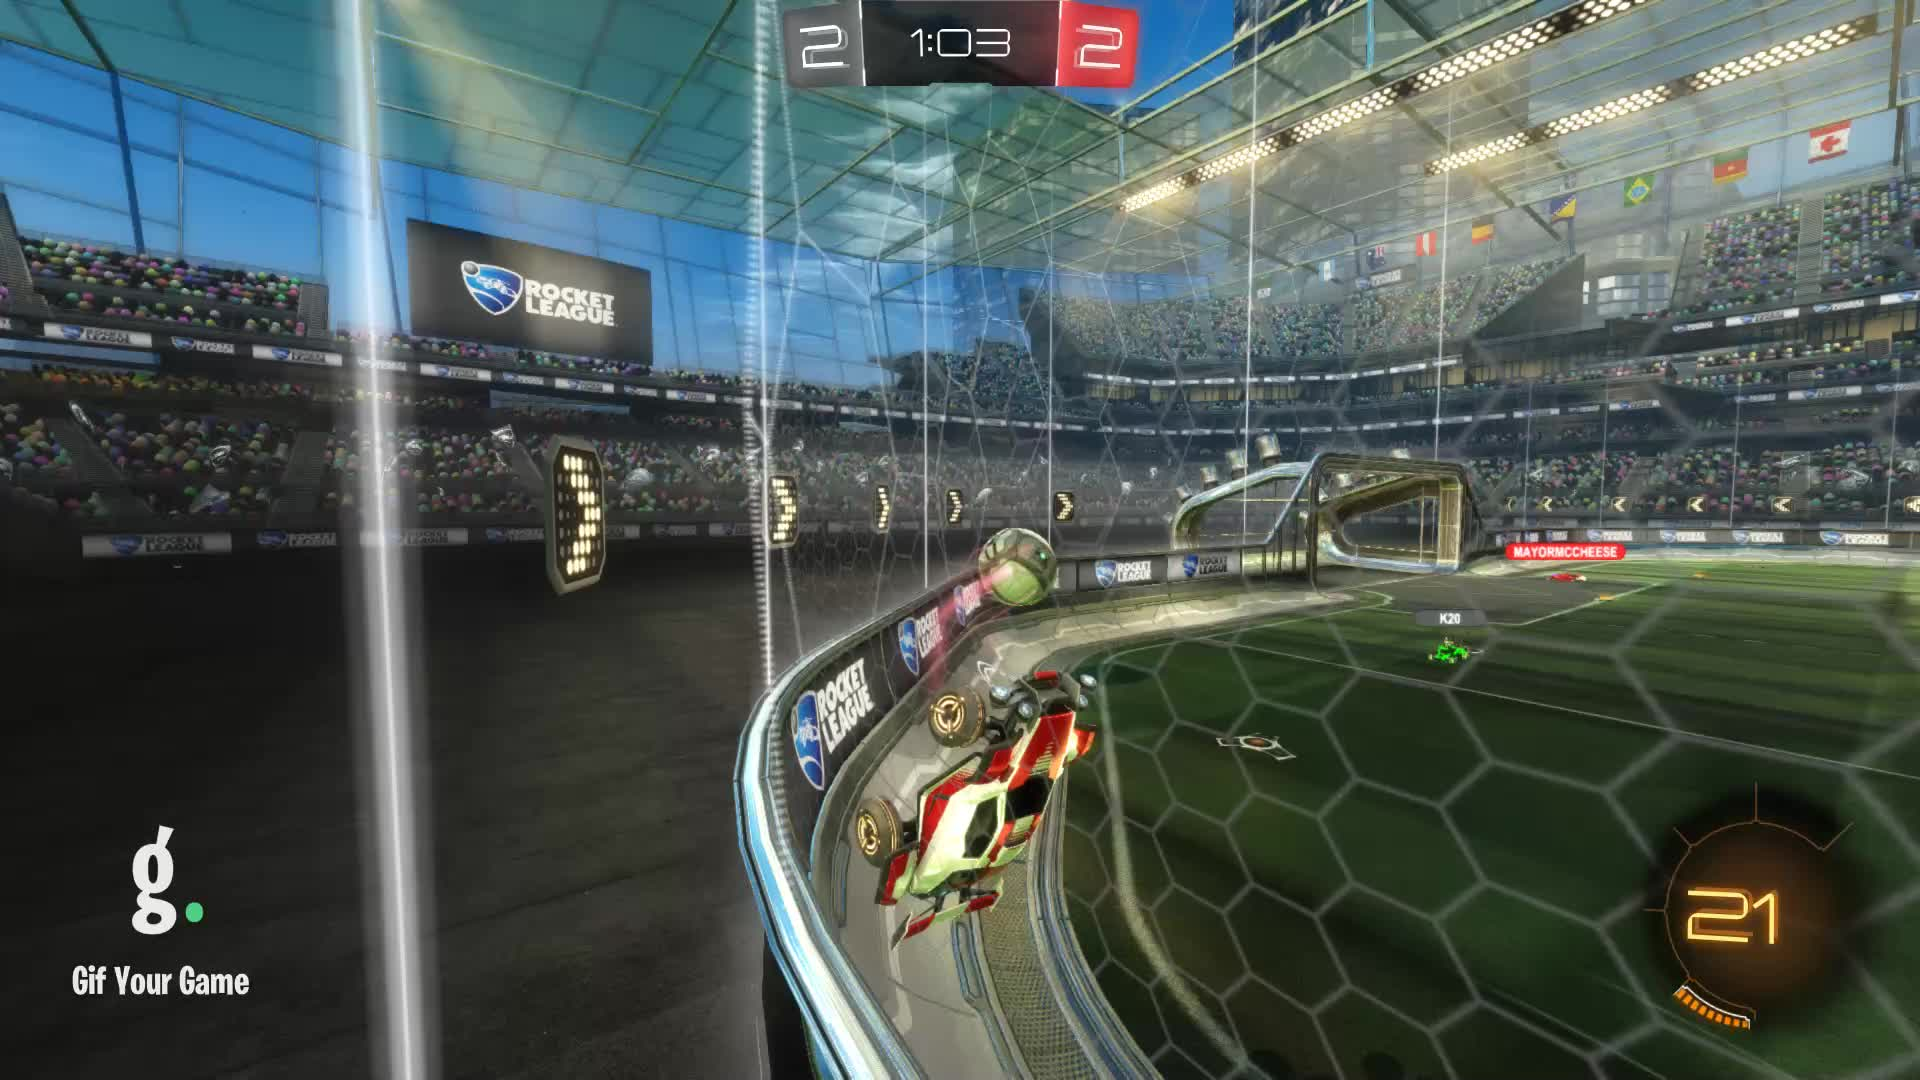 Assist, Gif Your Game, GifYourGame, ItWas...Justified, Rocket League, RocketLeague, Assist 3: ItWas...Justified GIFs